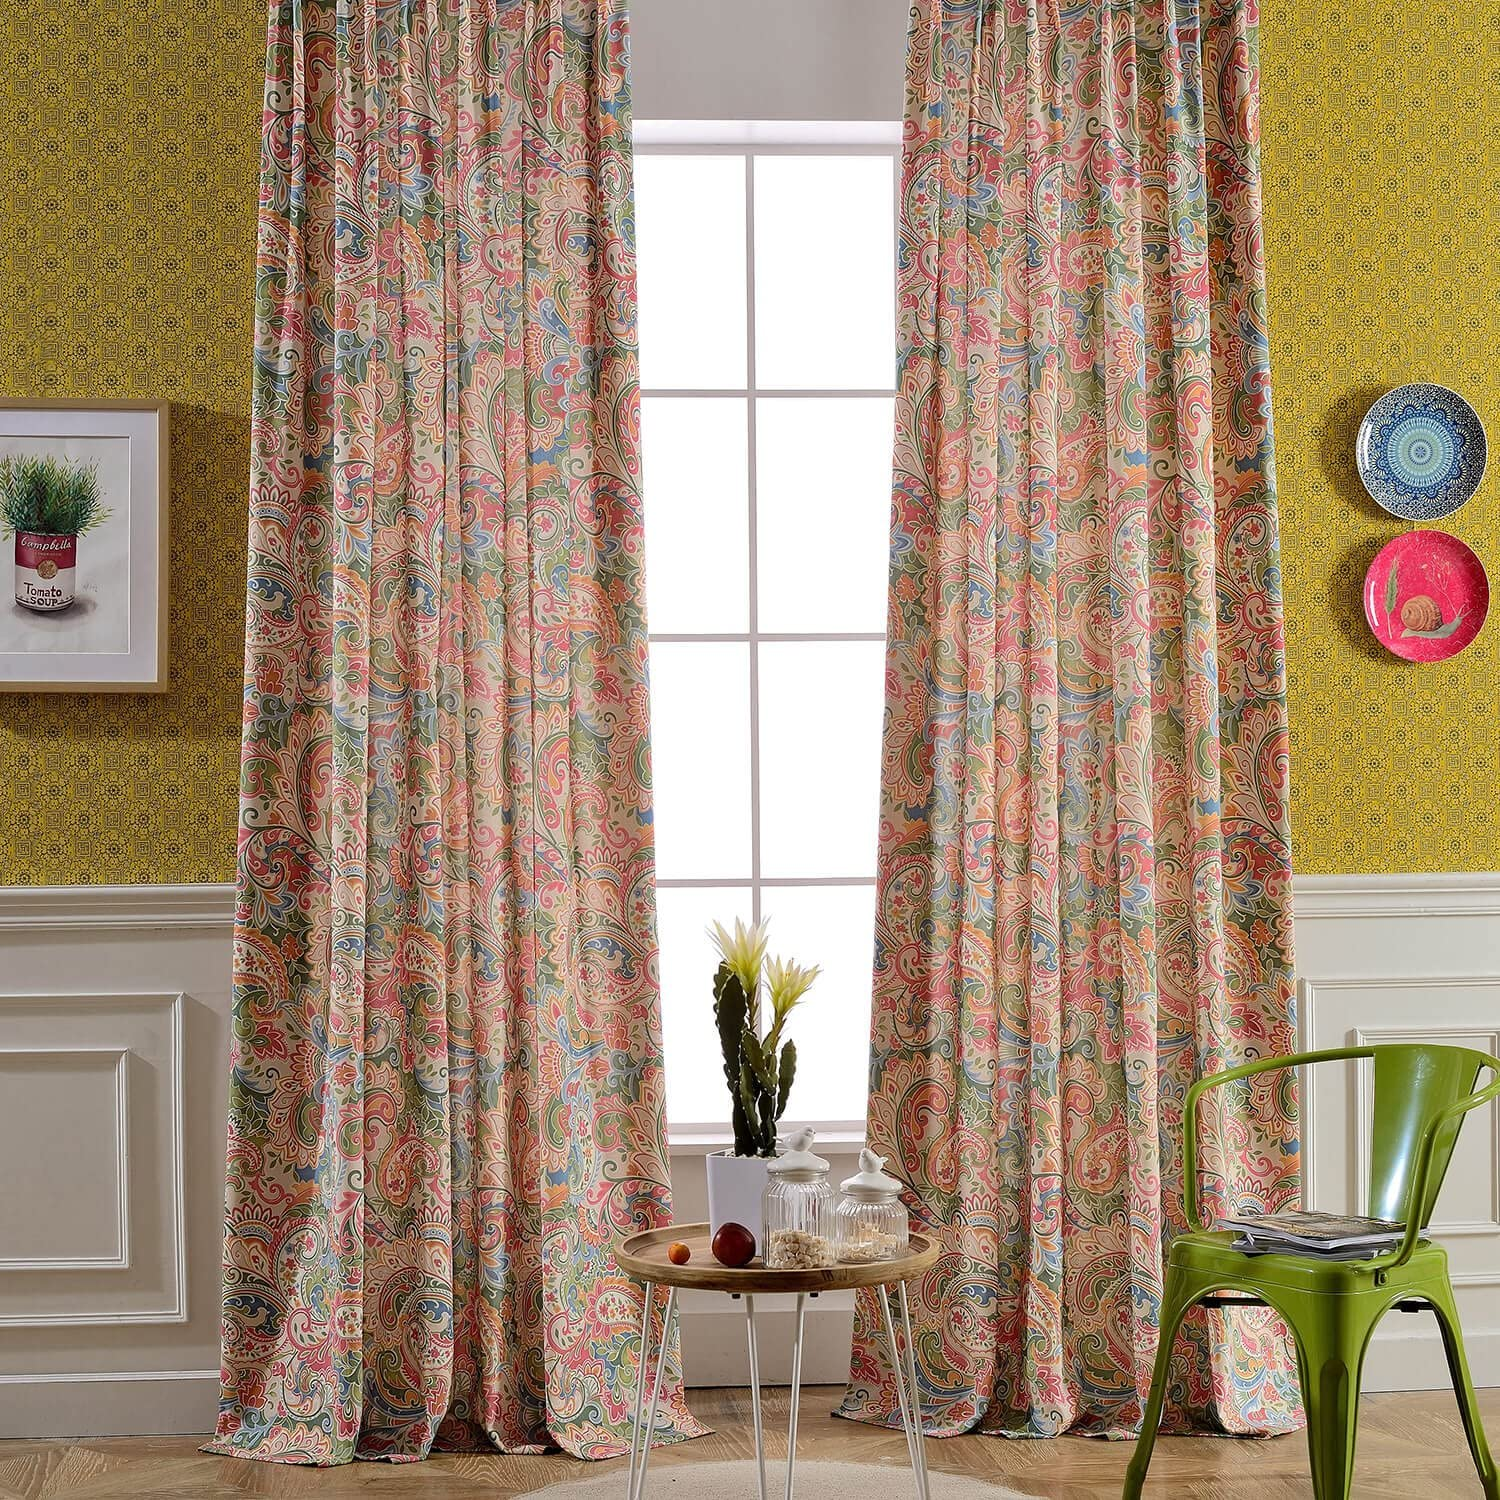 VOGOL Floral Printed Curtains, Noise Reduction Grommets Curtain Drapes Panels for Bedroom Hotel and Living Room, Set of 2 Panels, W52 x L84 inch, Orange